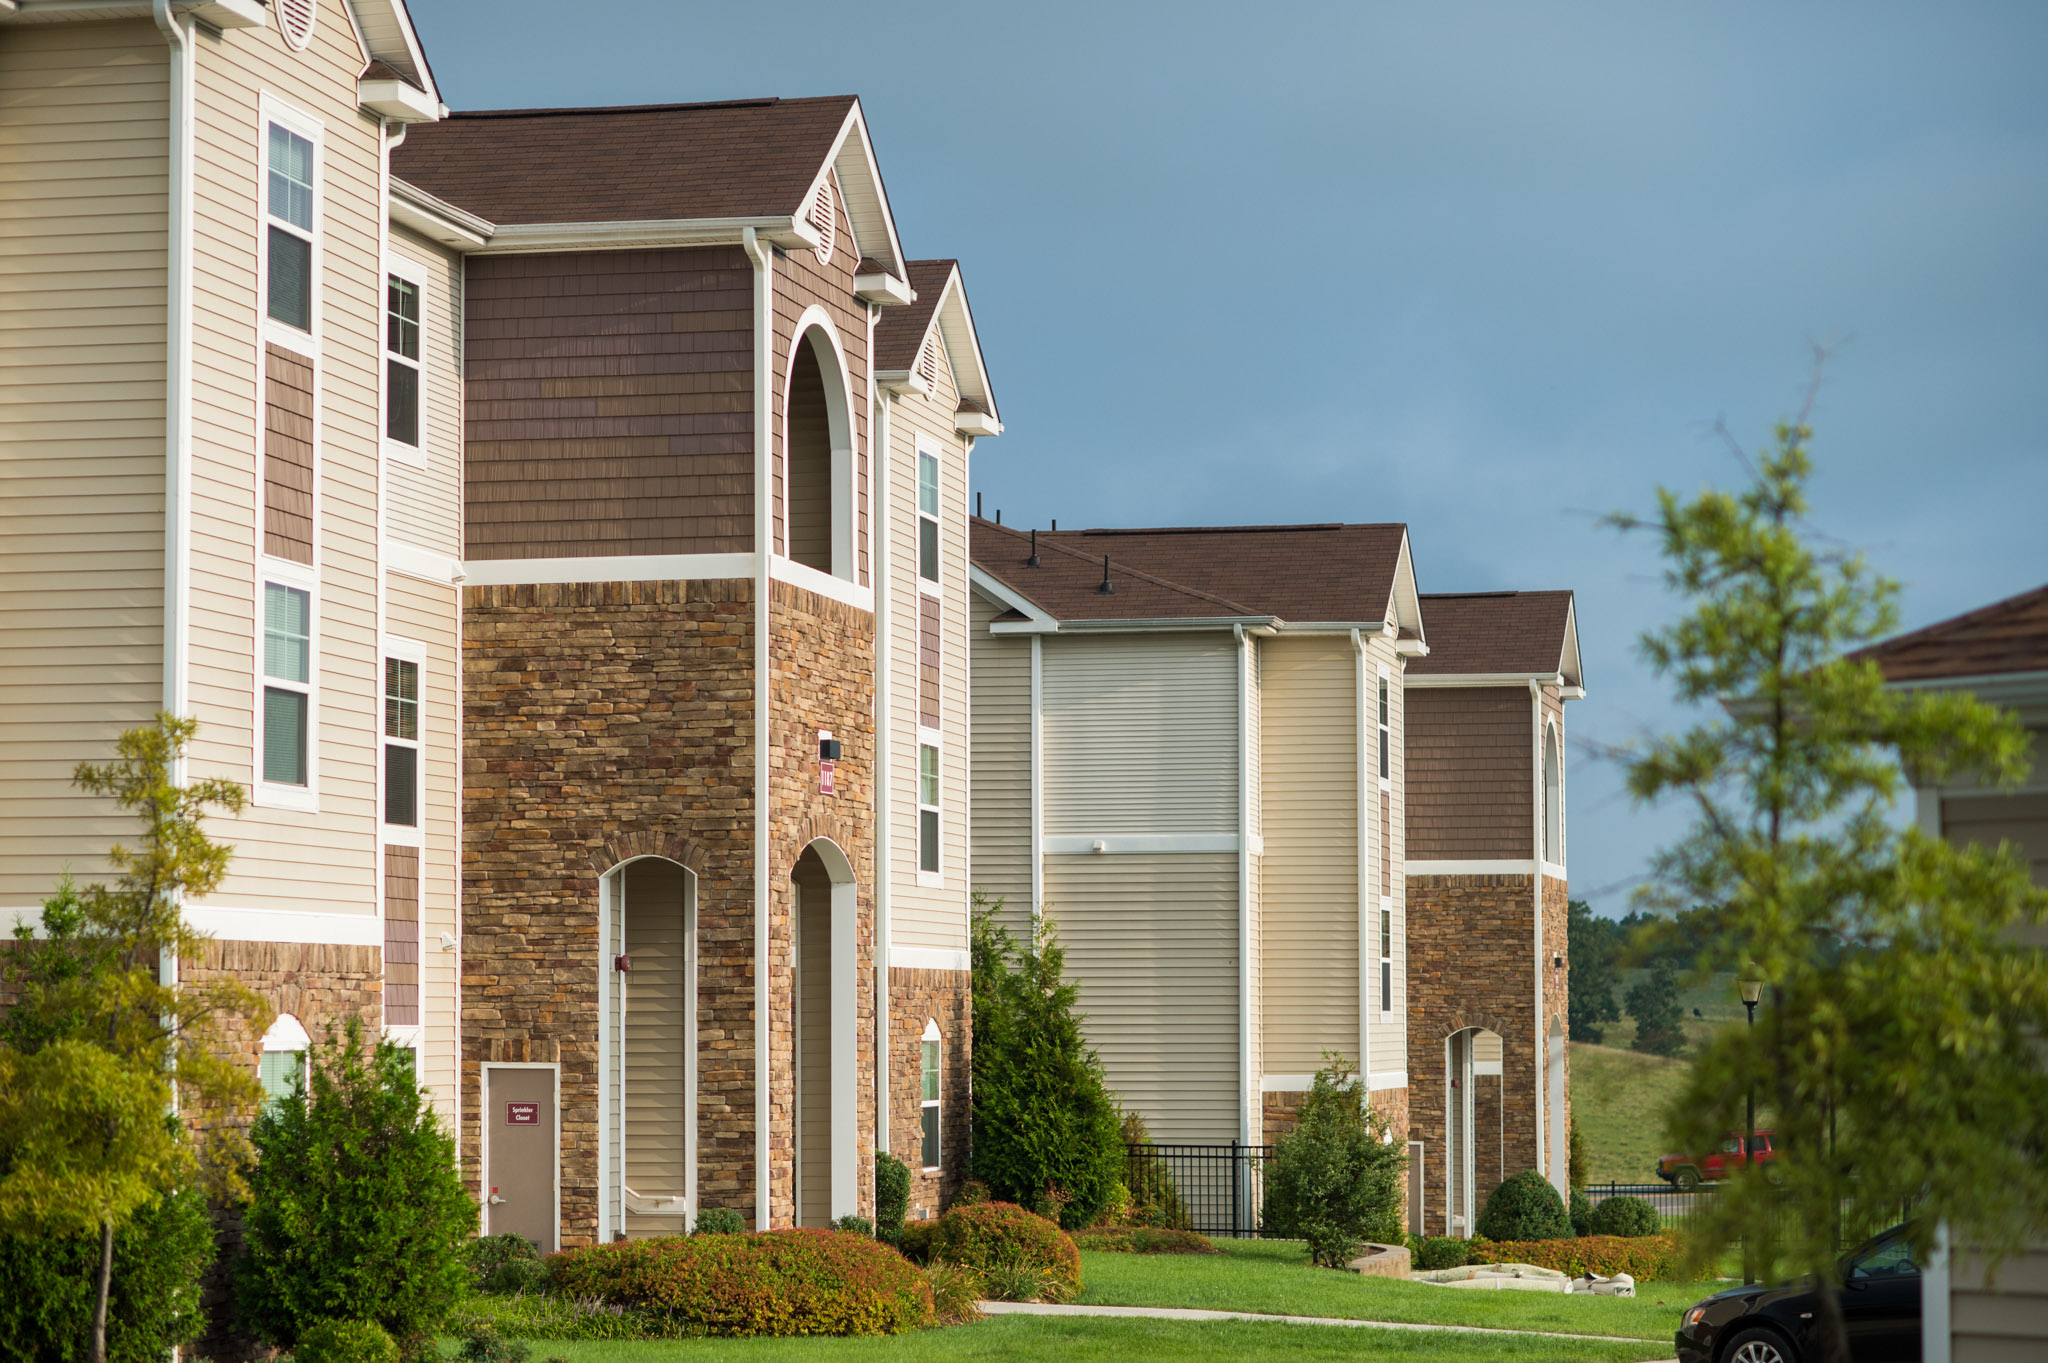 North 38 Exteriors for Web-1065.jpg